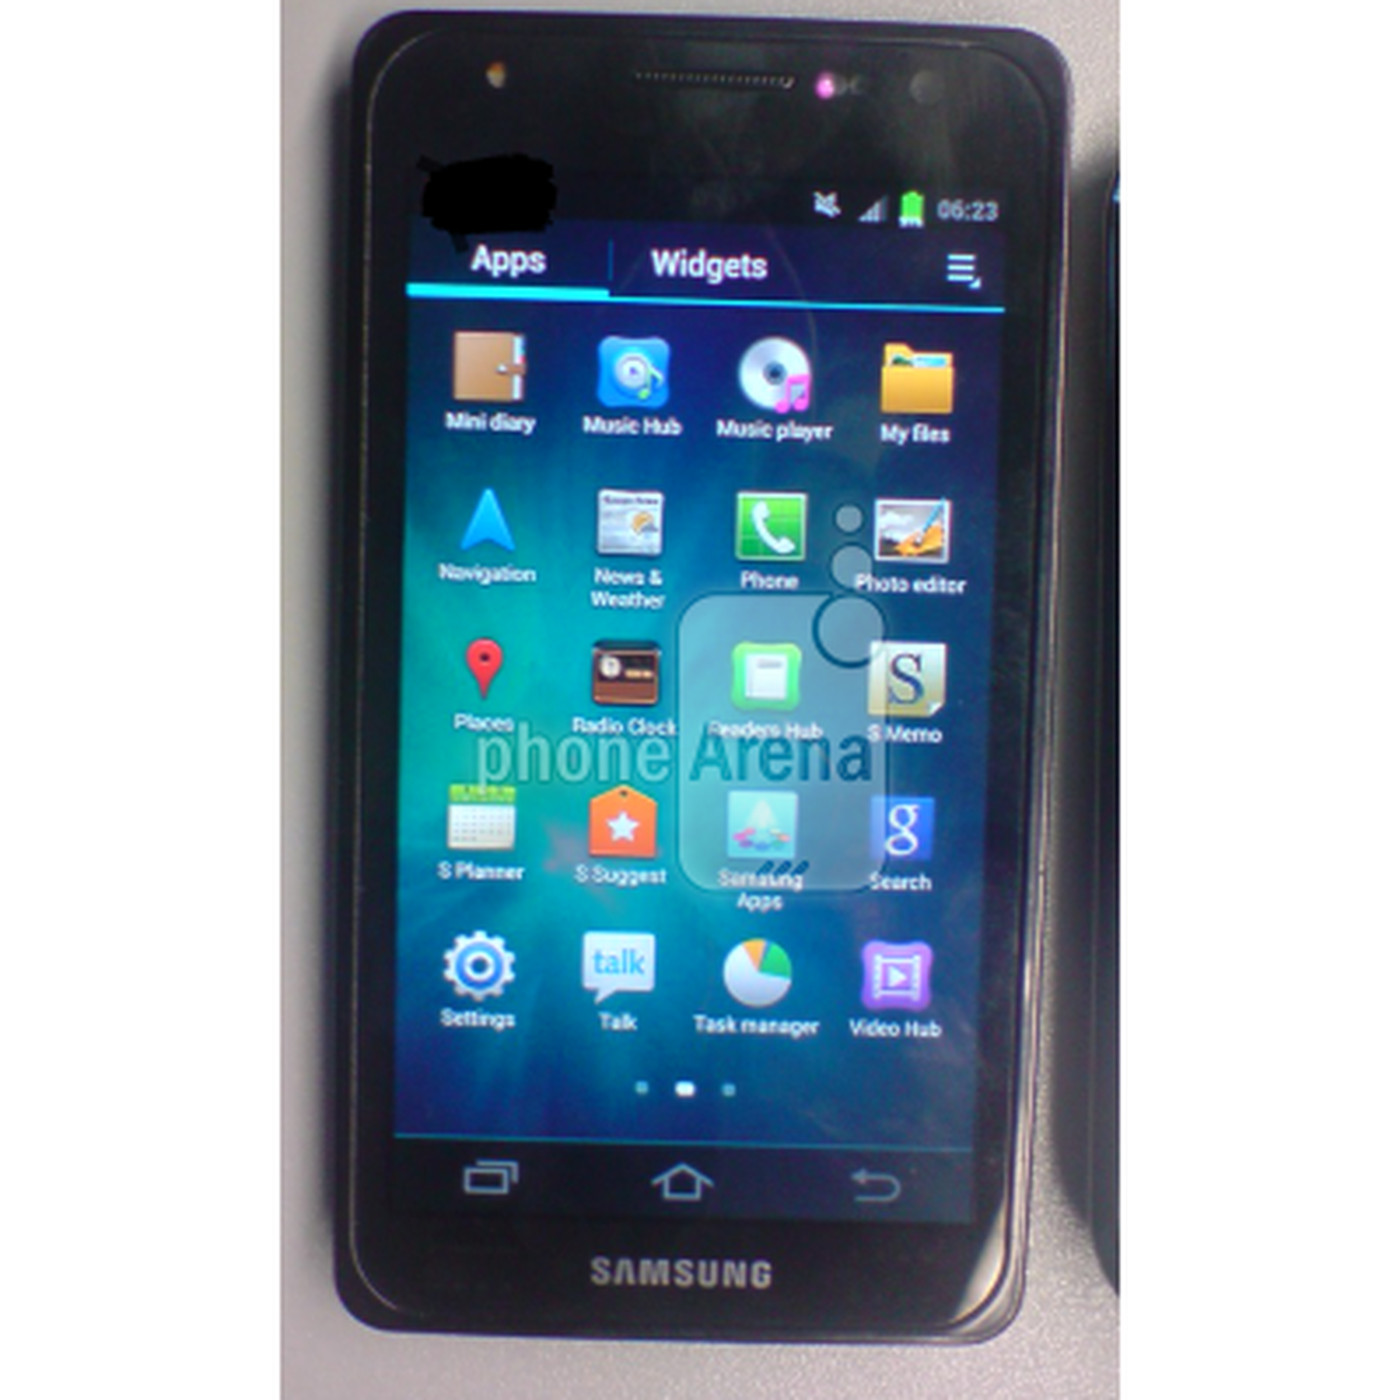 Samsung 'GT-i9300' leaked photo could be Galaxy S III - The